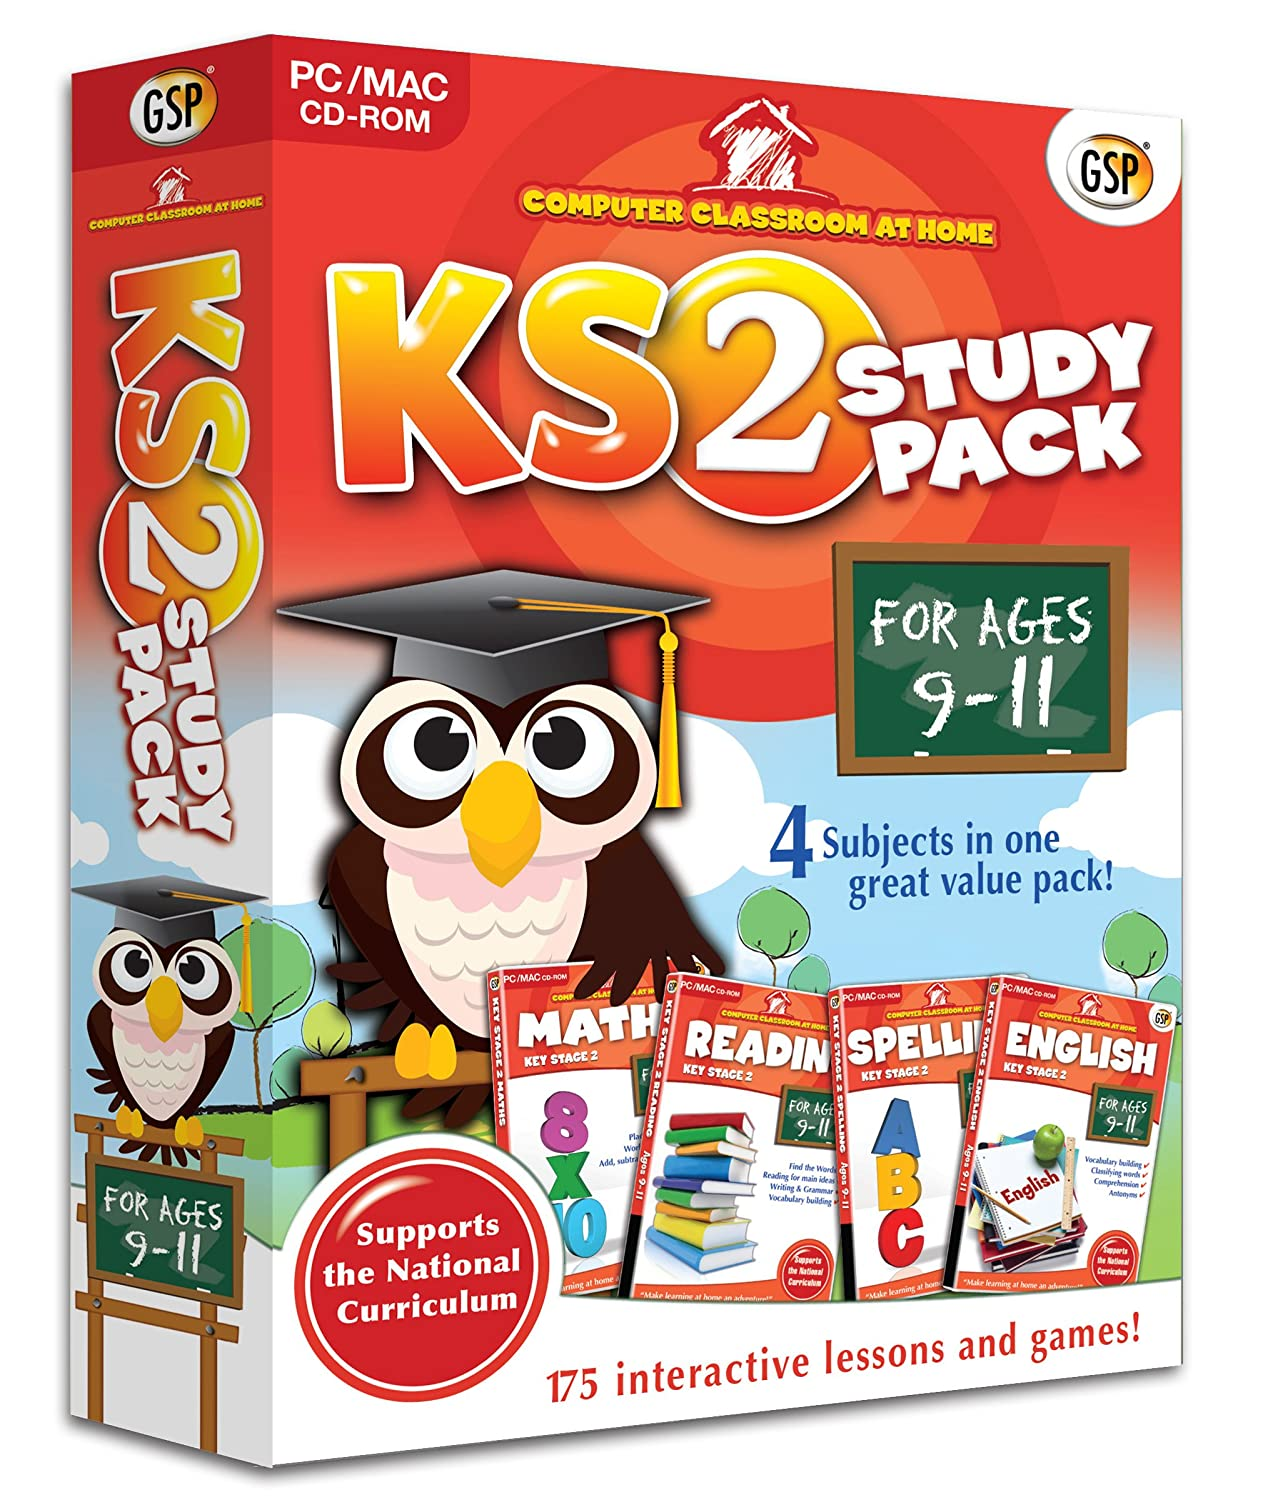 Computer Classroom at Home: Key Stage 2 Study Pack (For Ages 9-11 ...